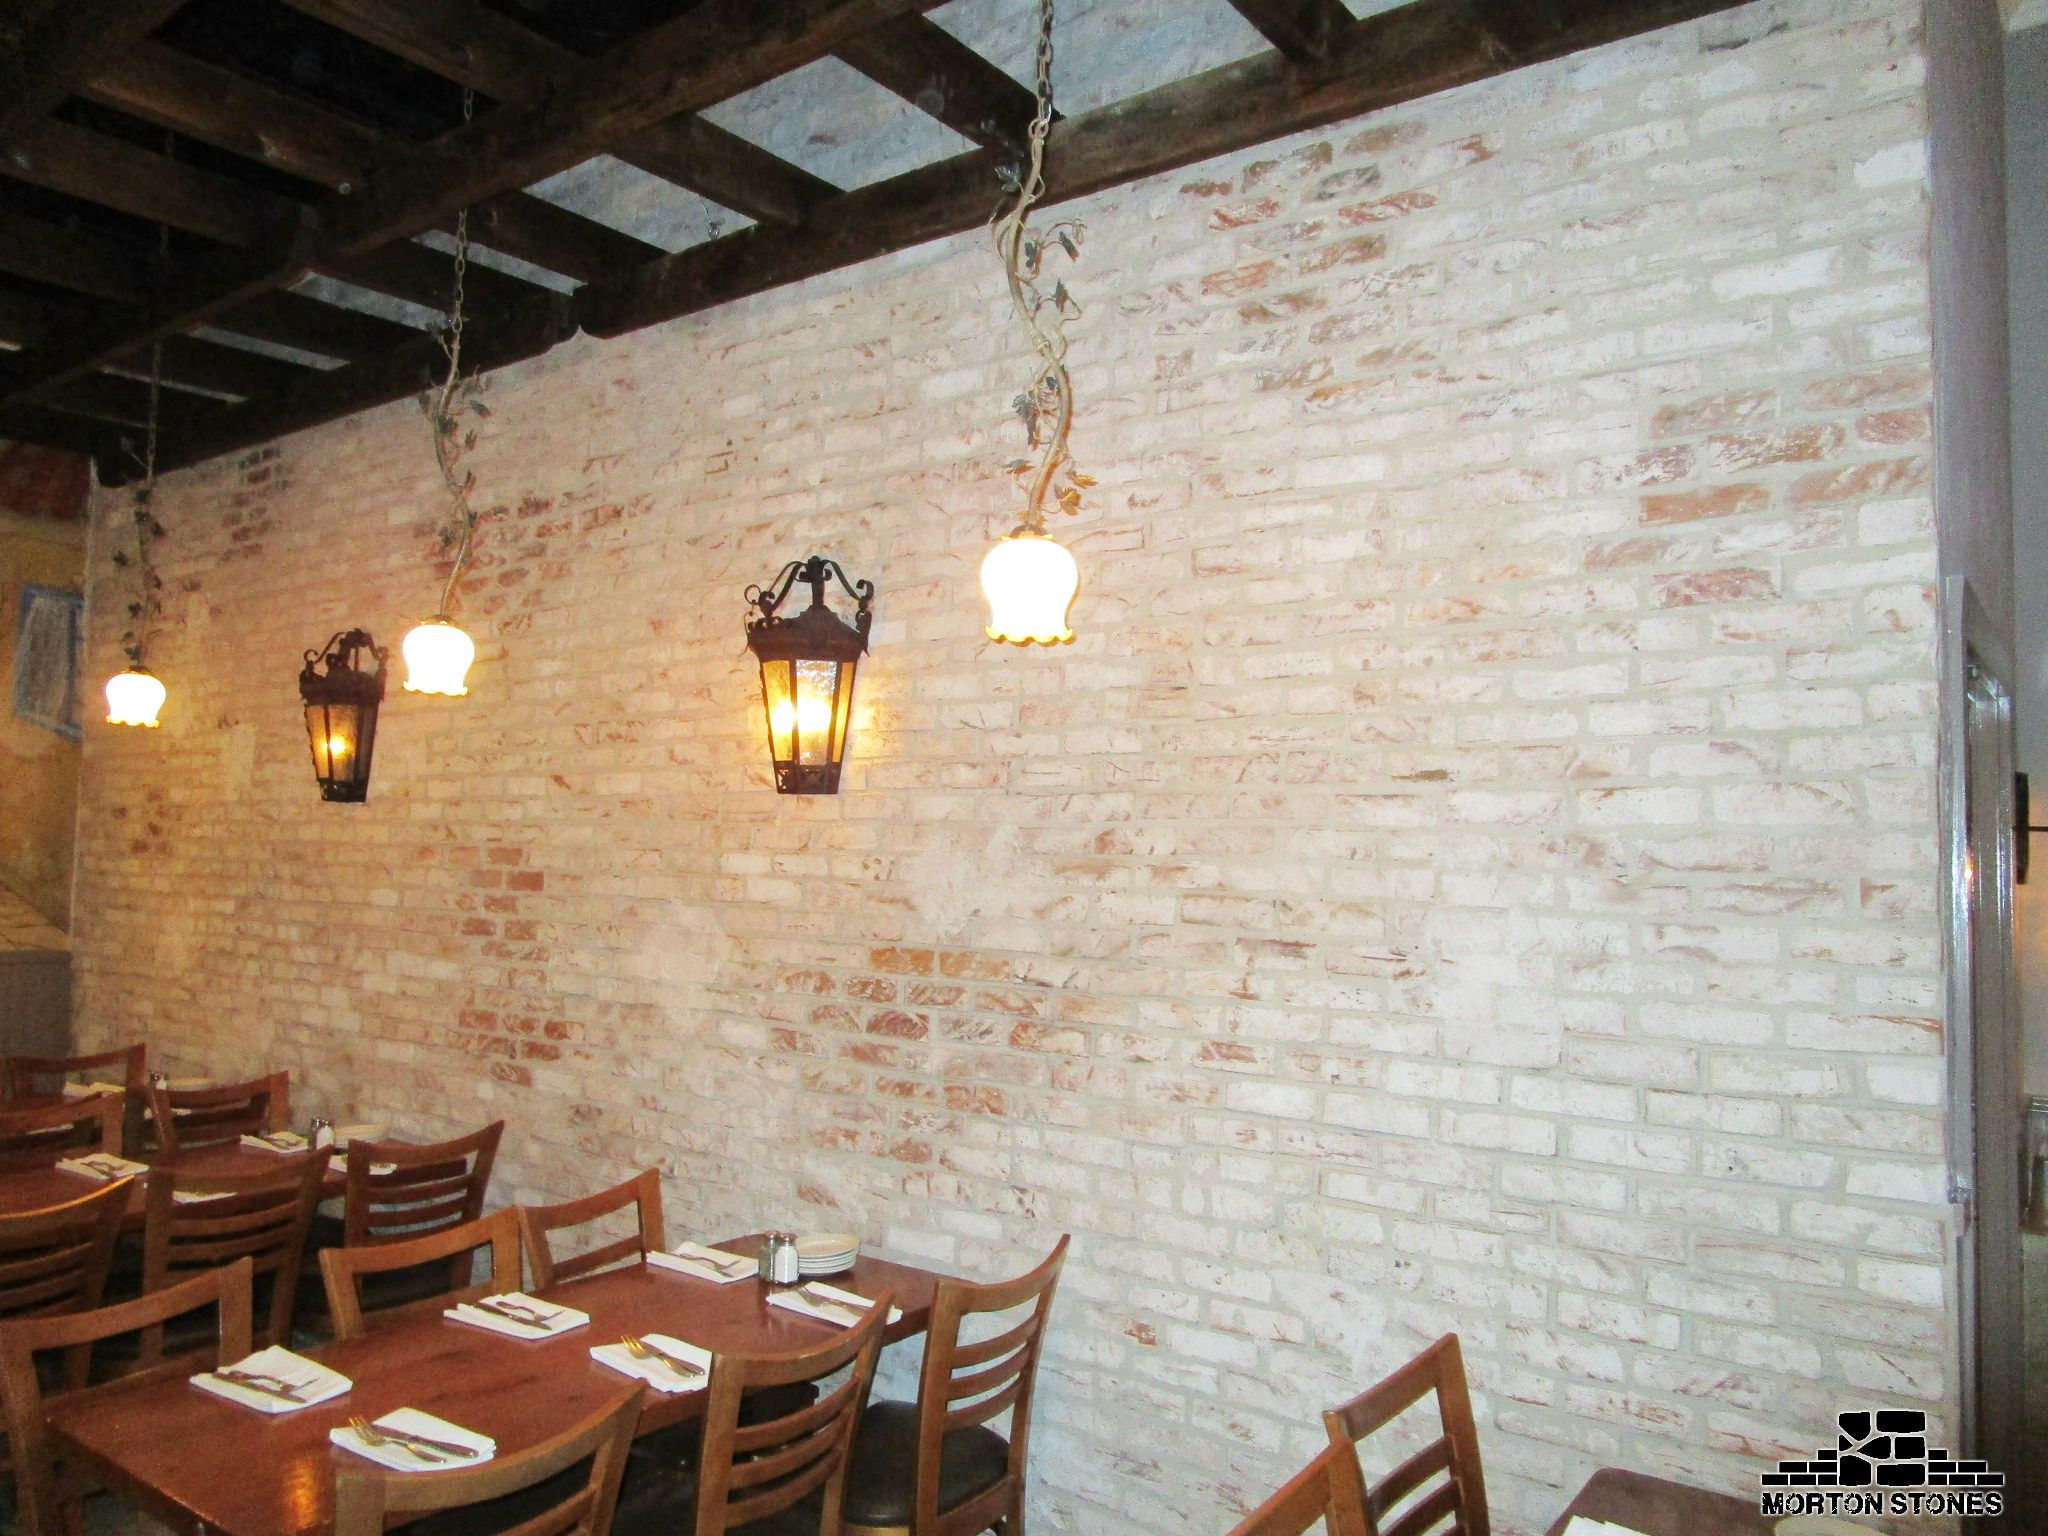 A Classic White Brick Wall In A Restaurant #Mortonstones #Brick